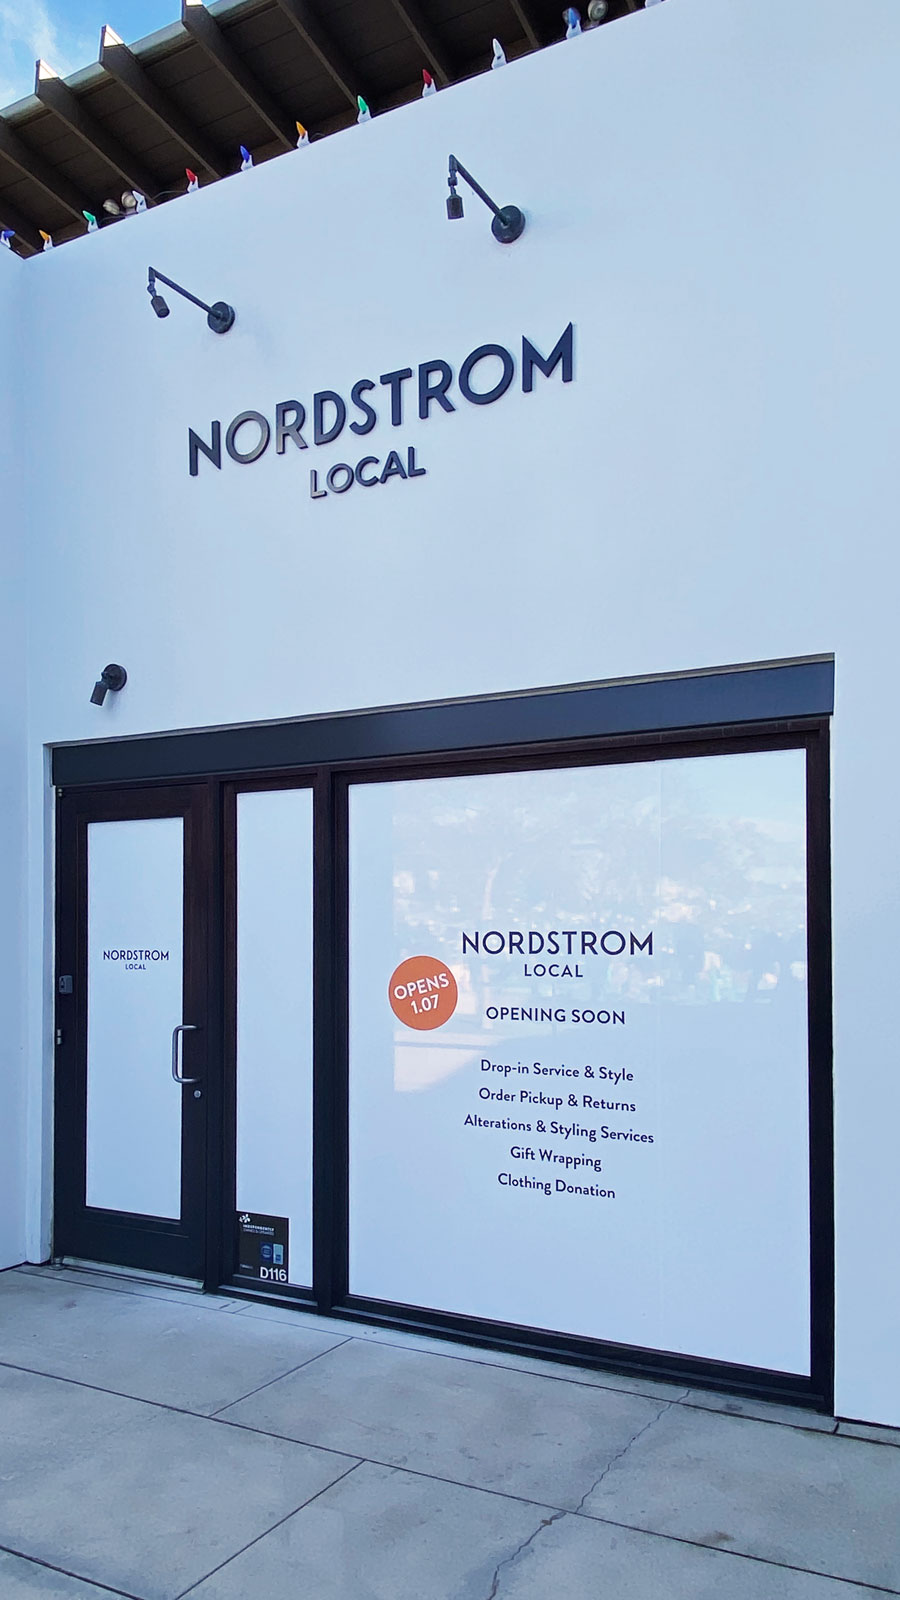 Nordstrom Local PVC 3D letters and window decals